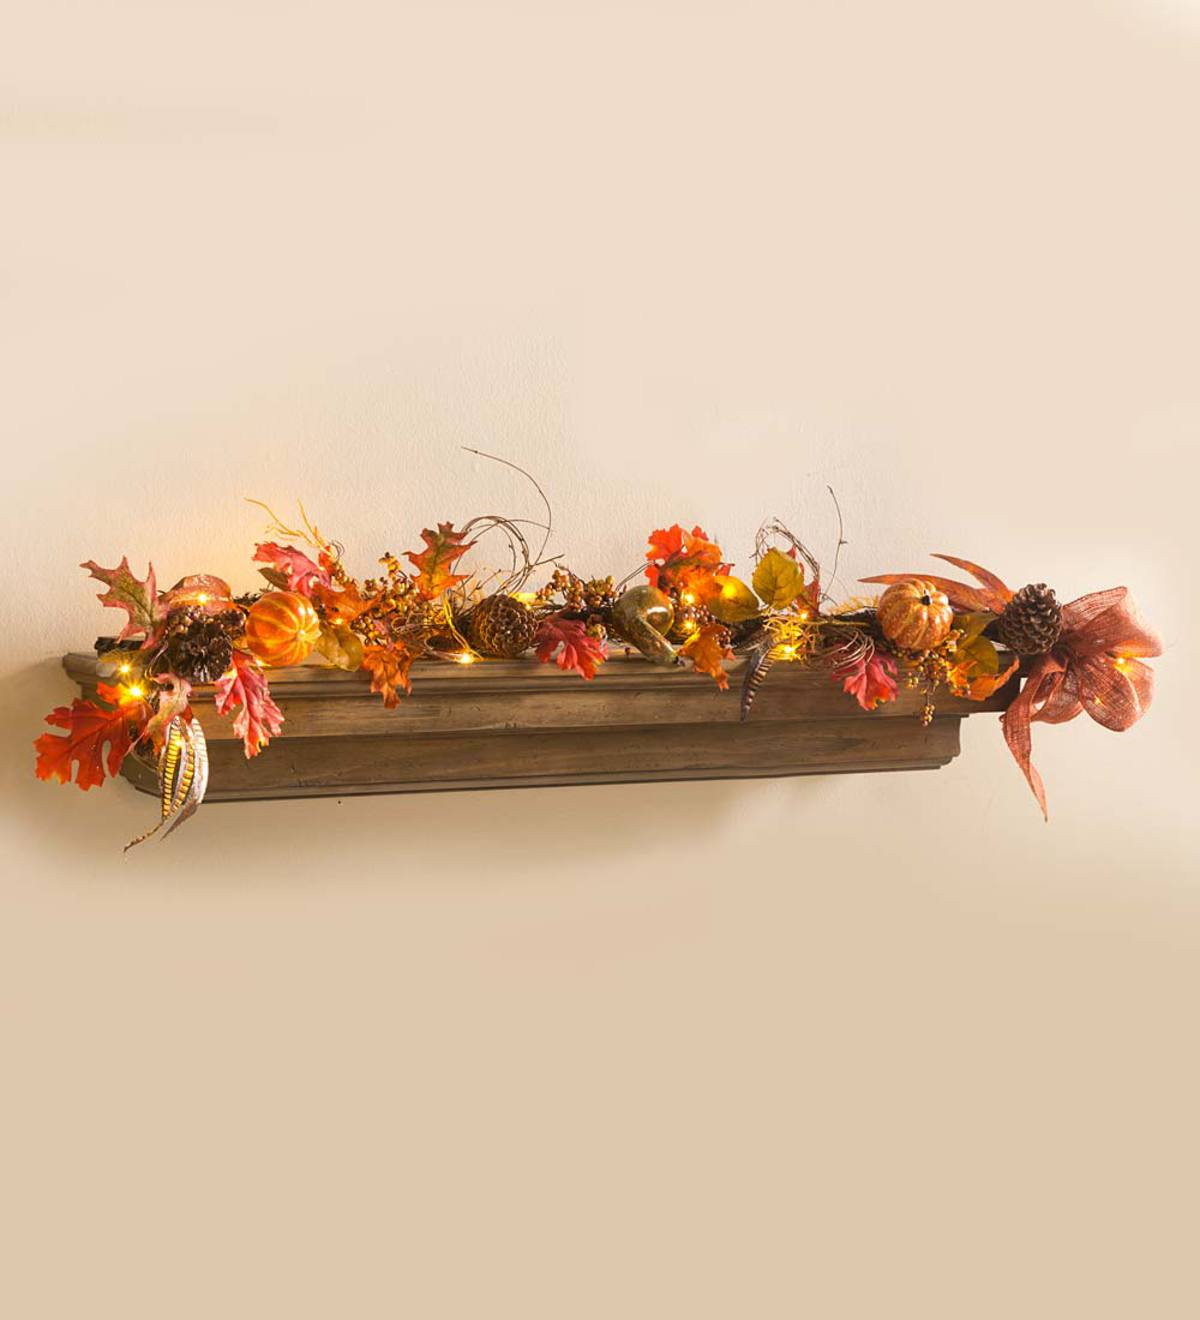 5 Lighted Fall Harvest Indoor Garland Plowhearth